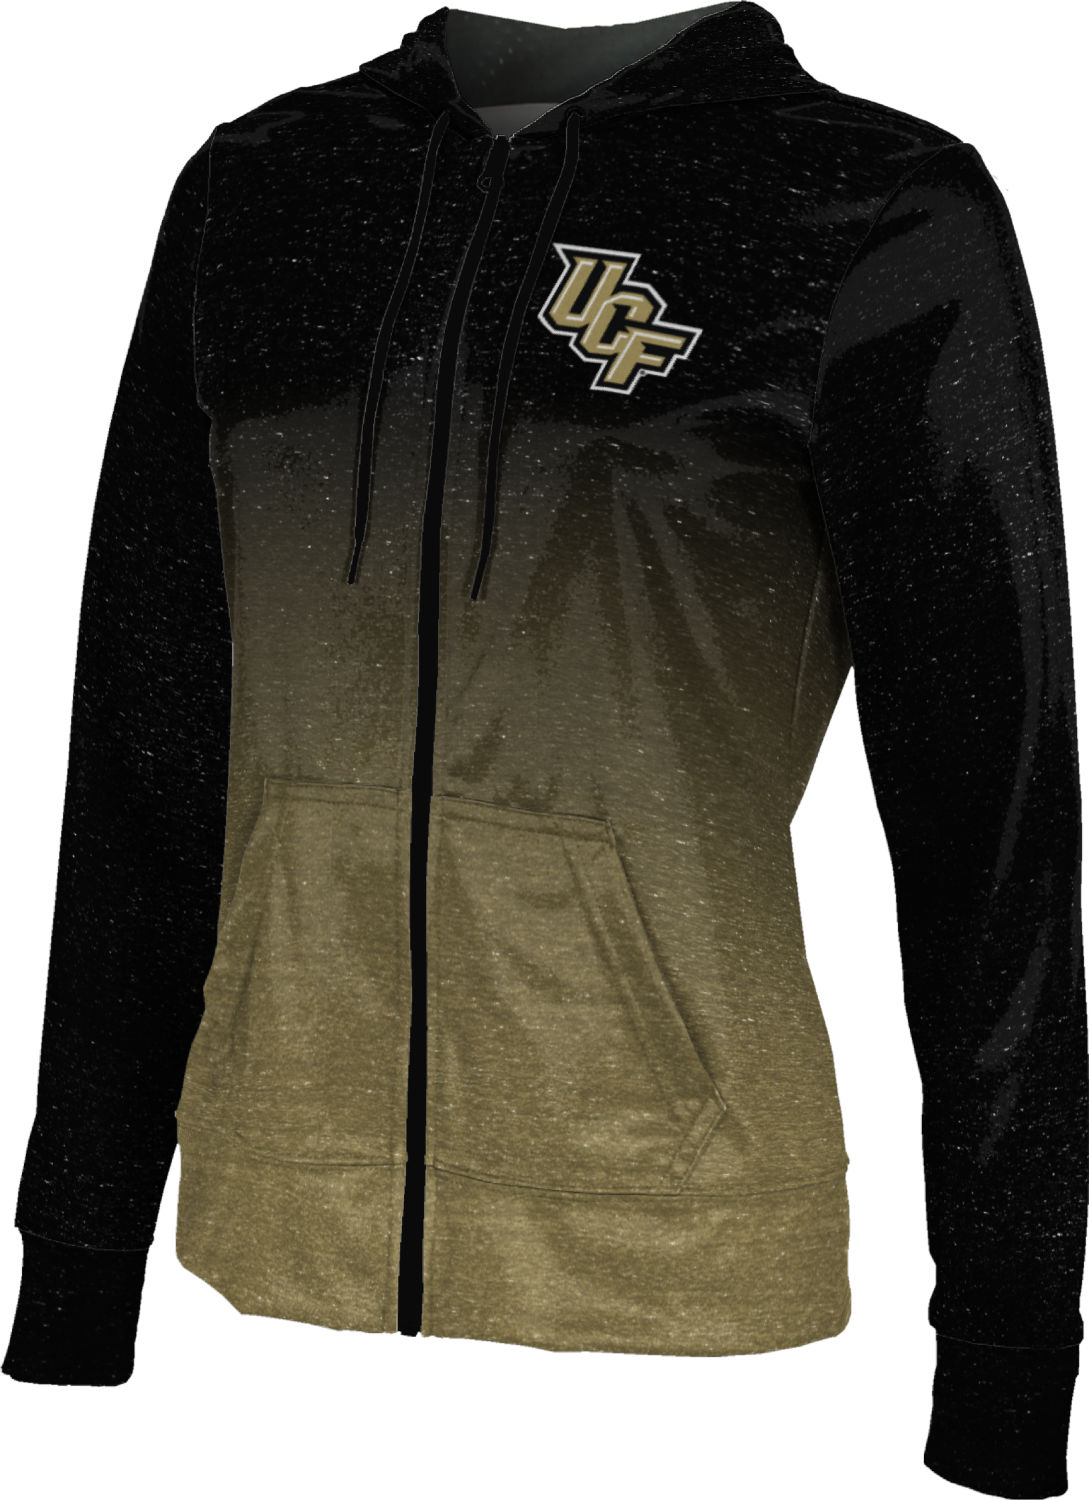 ProSphere Girls' University of Central Florida Ombre Fullzip Hoodie